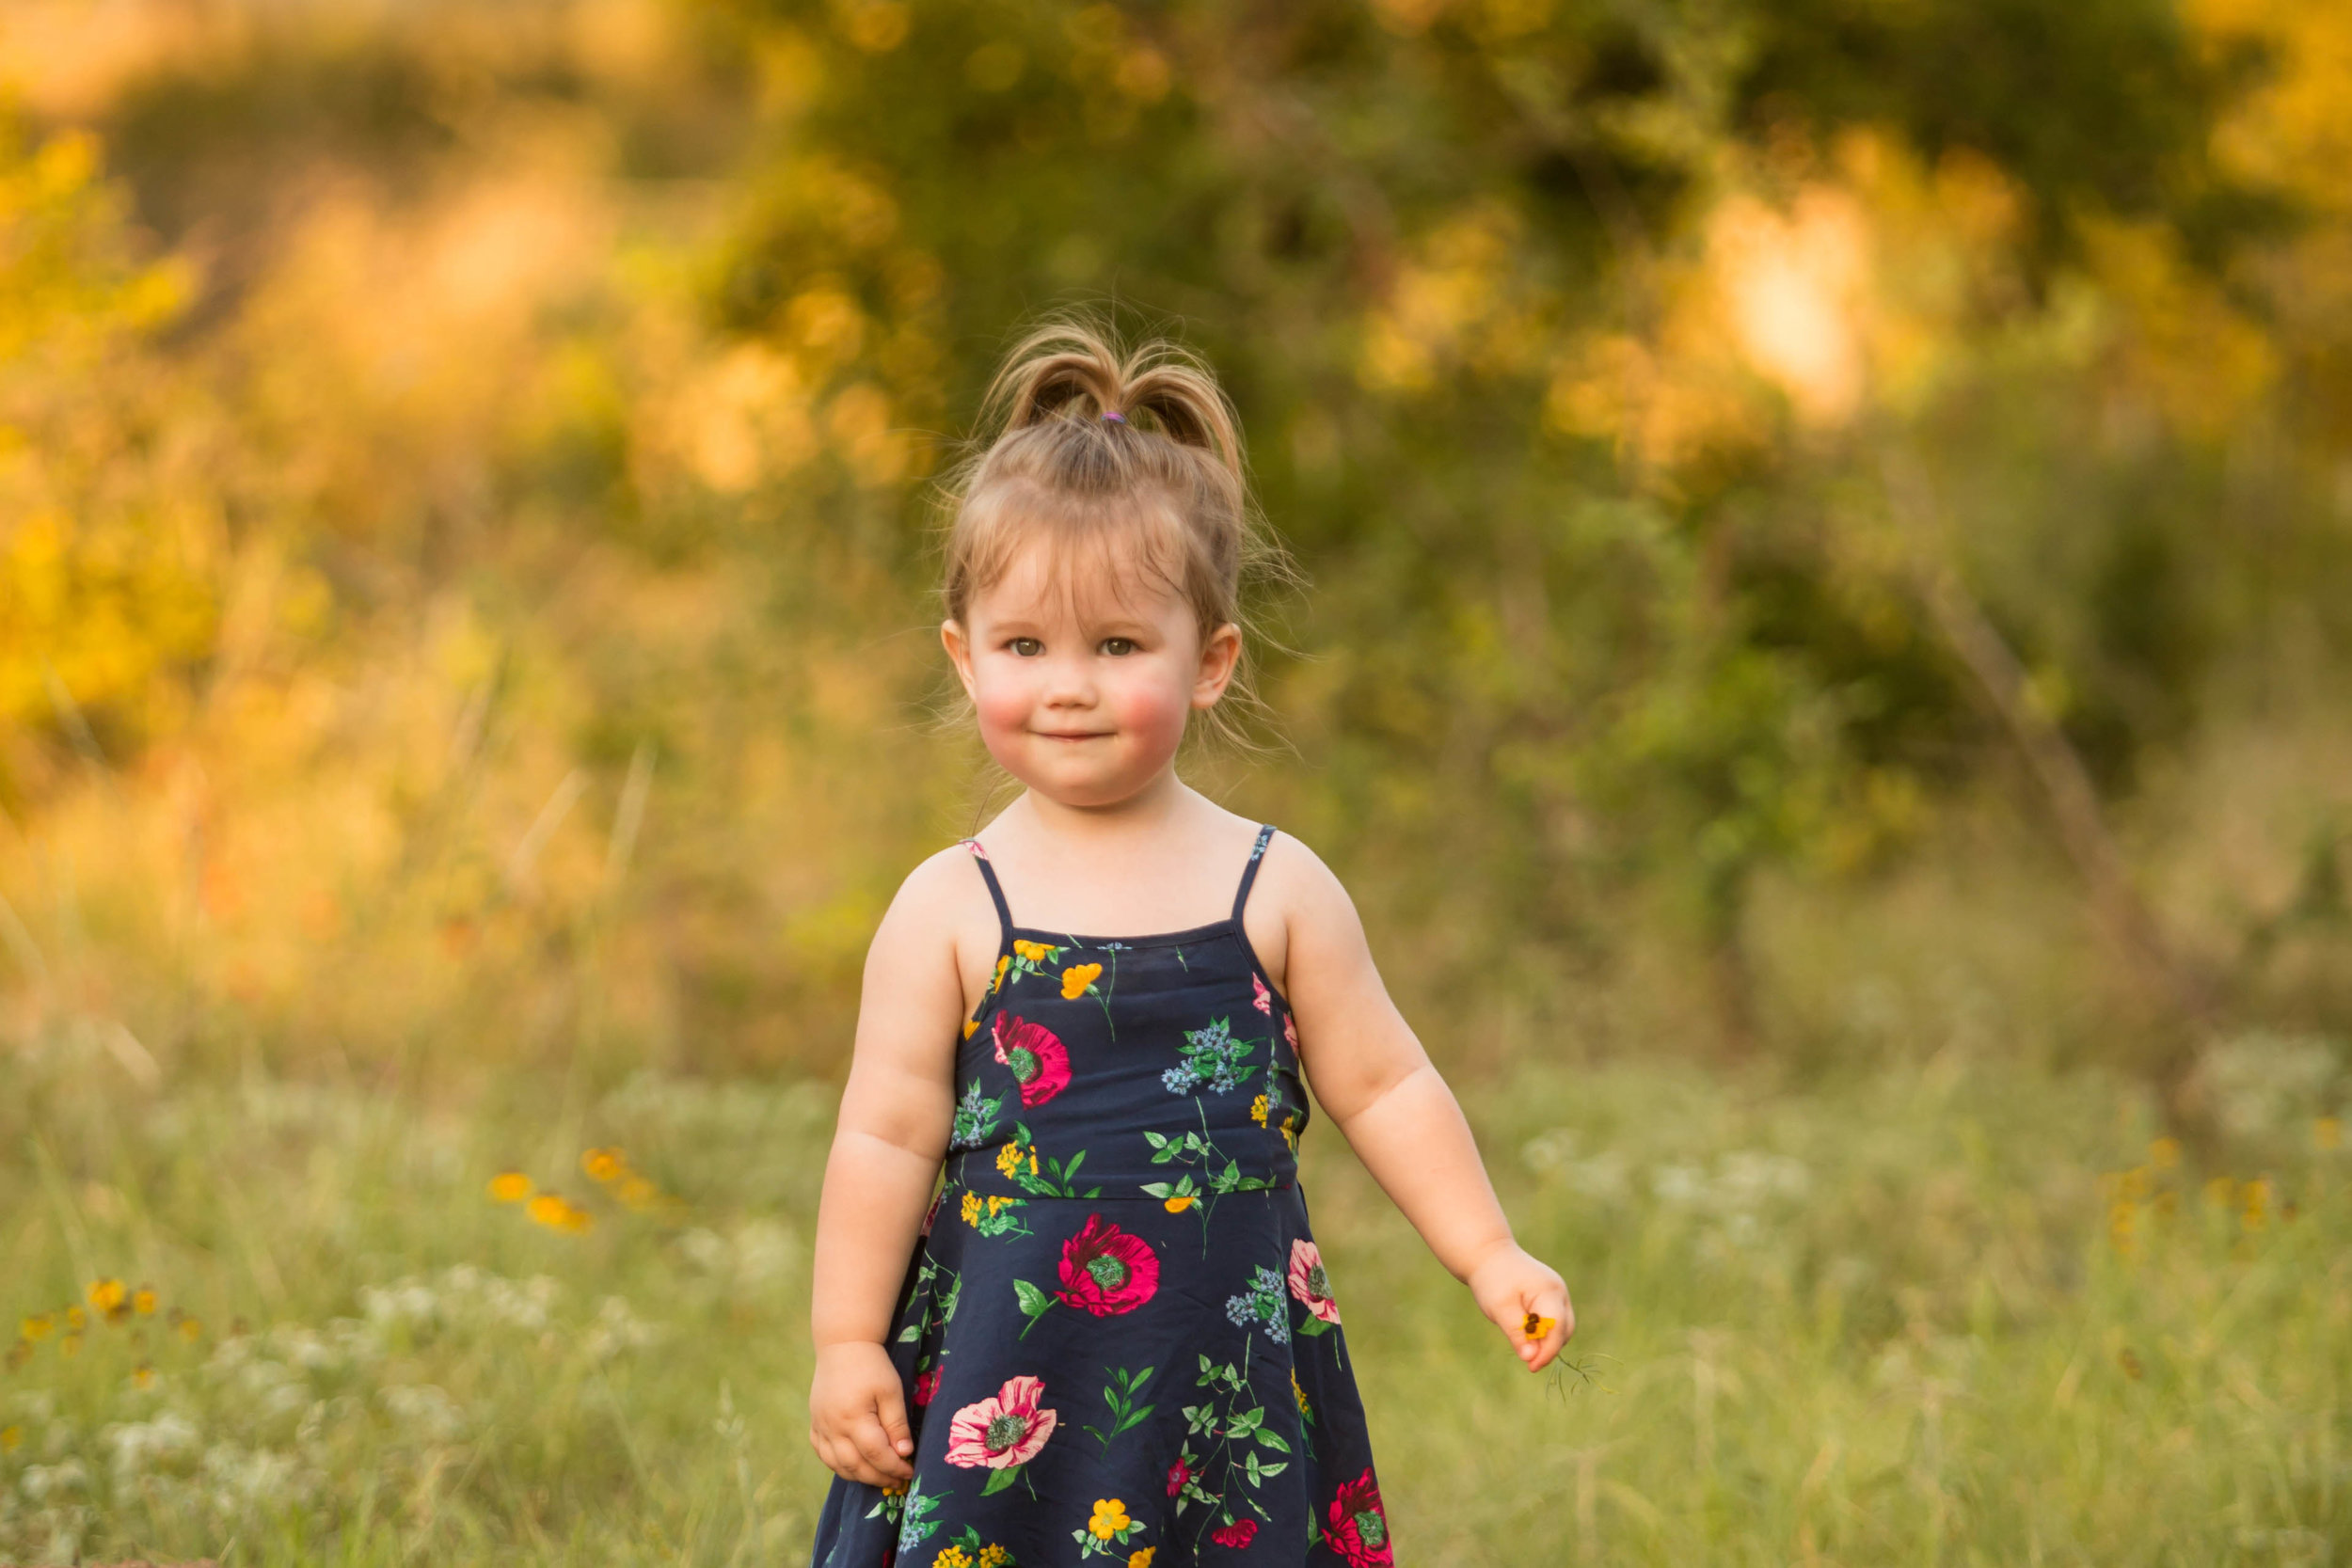 Marble_Falls_Family_Photographer_Jenna_Petty_19.jpg